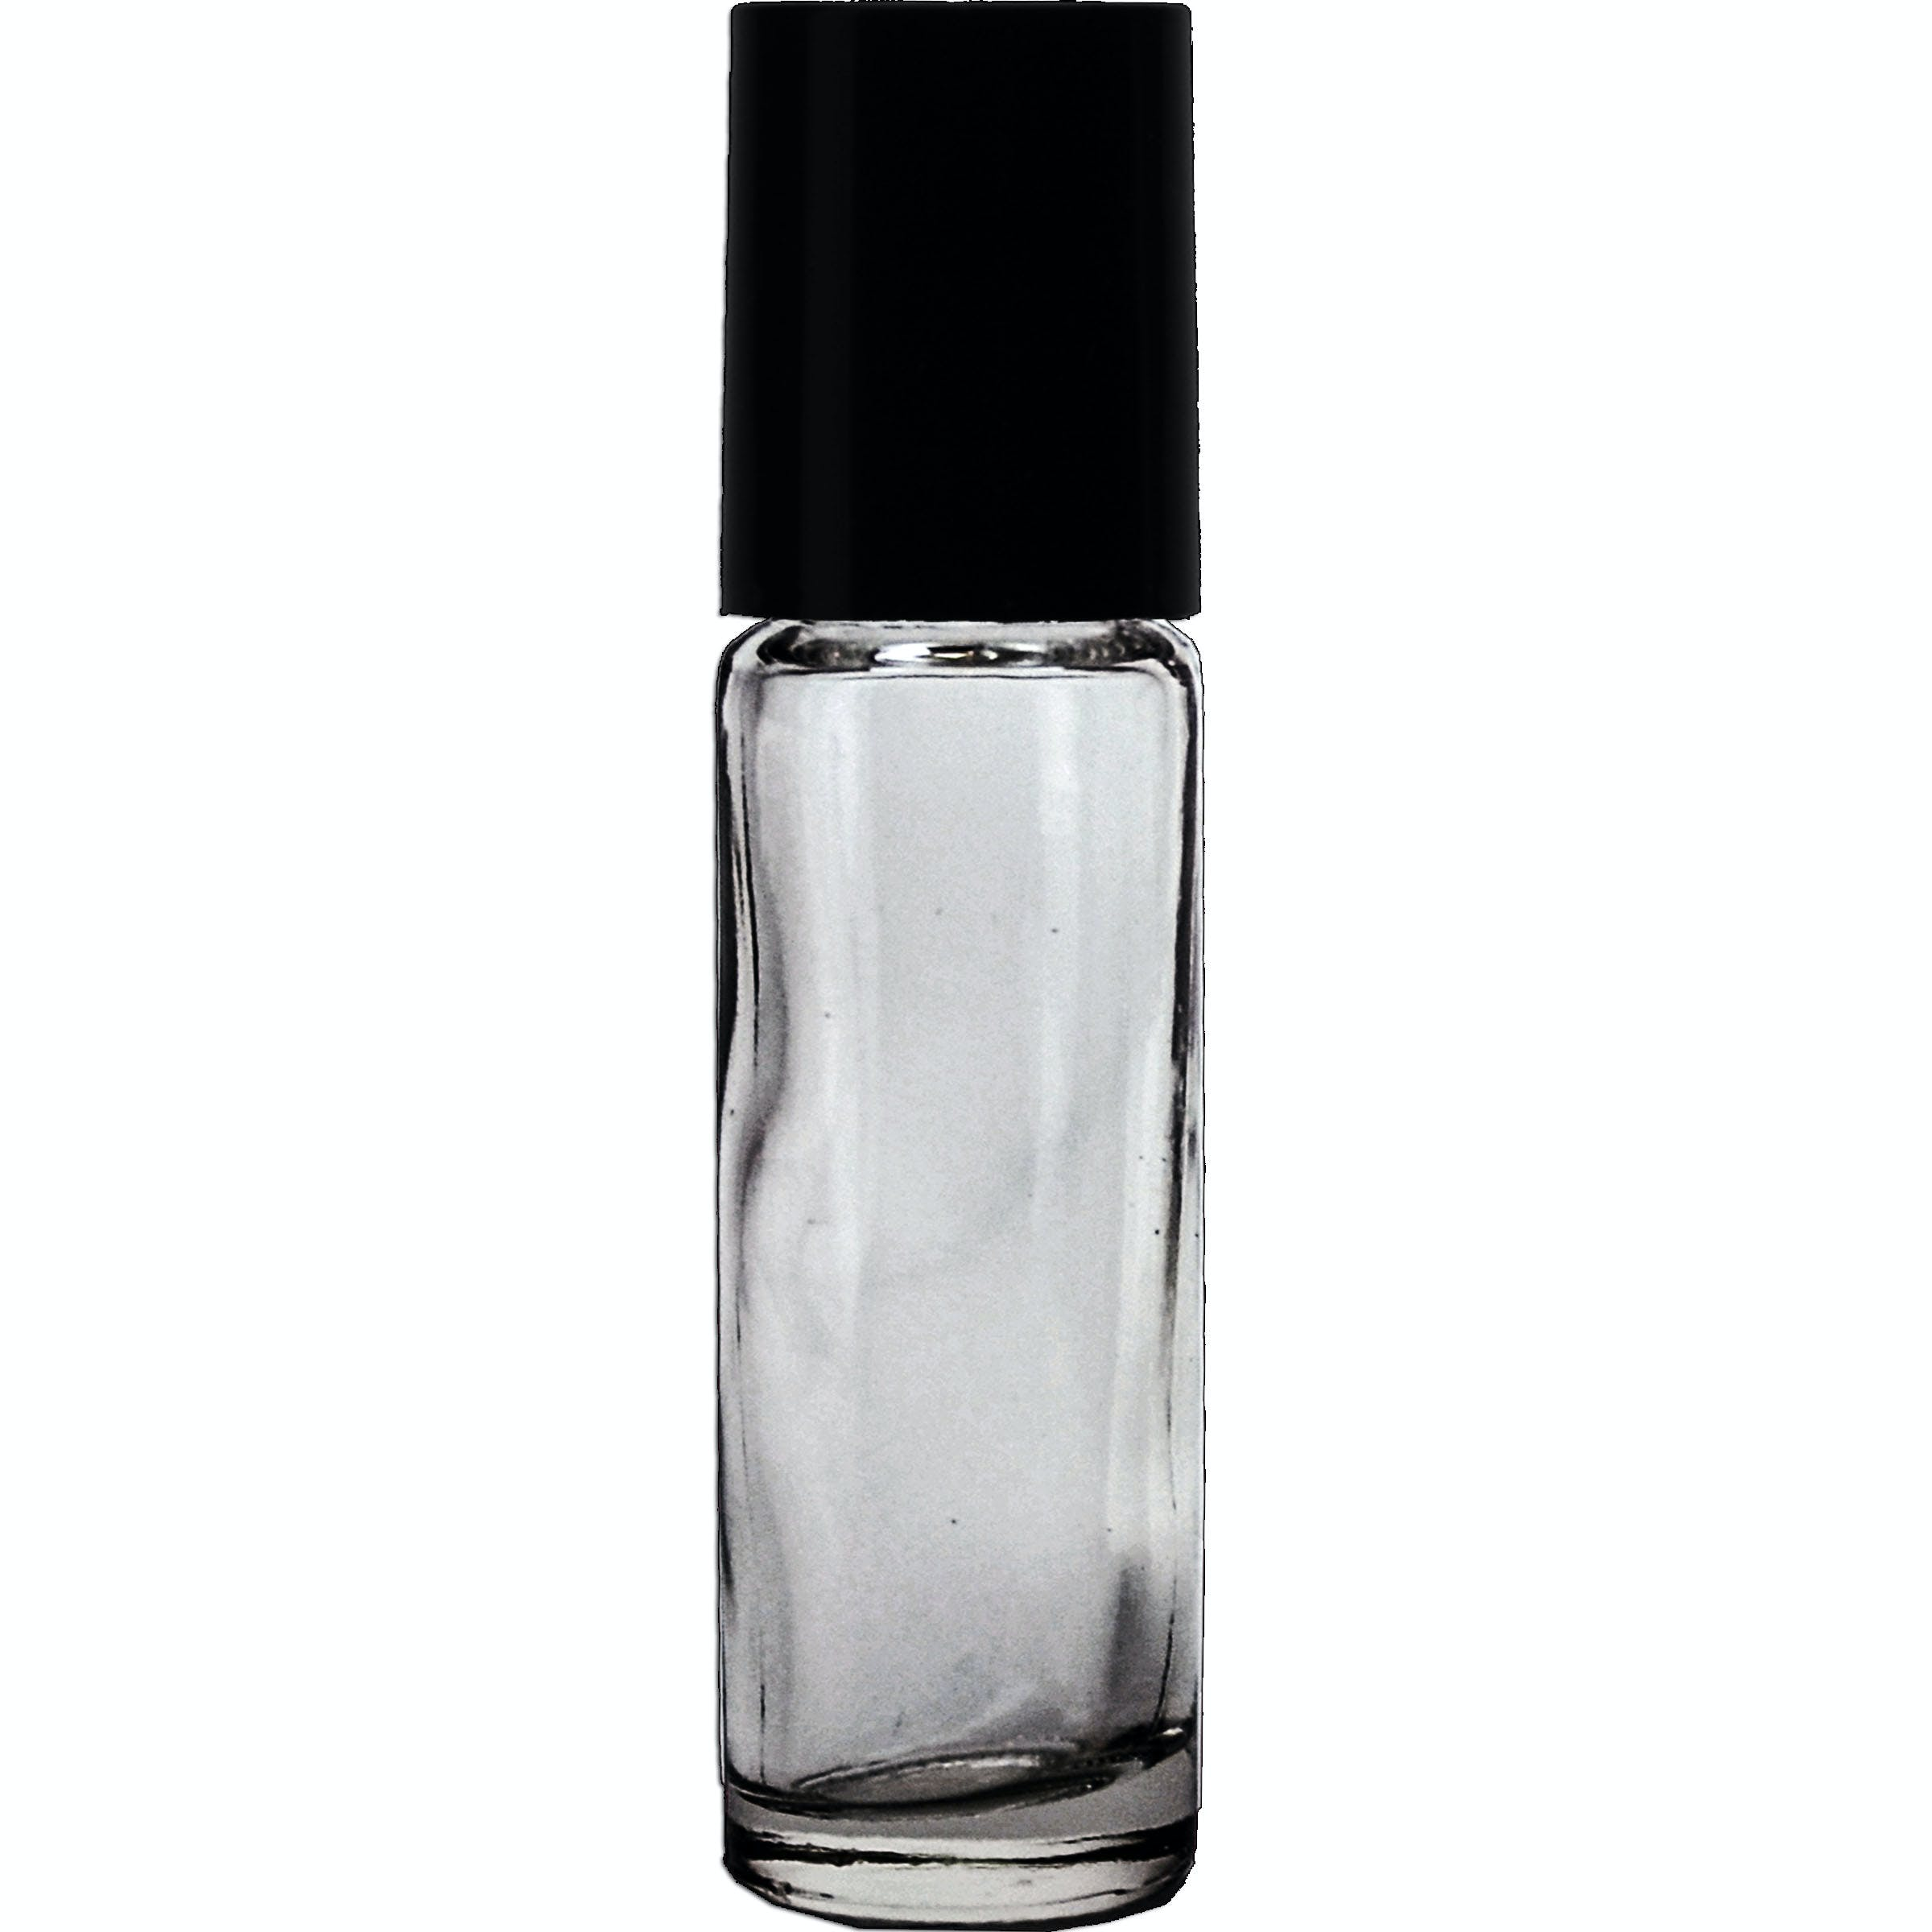 10ml Roll-on with black cap - sold by Glass Bottle Outlet